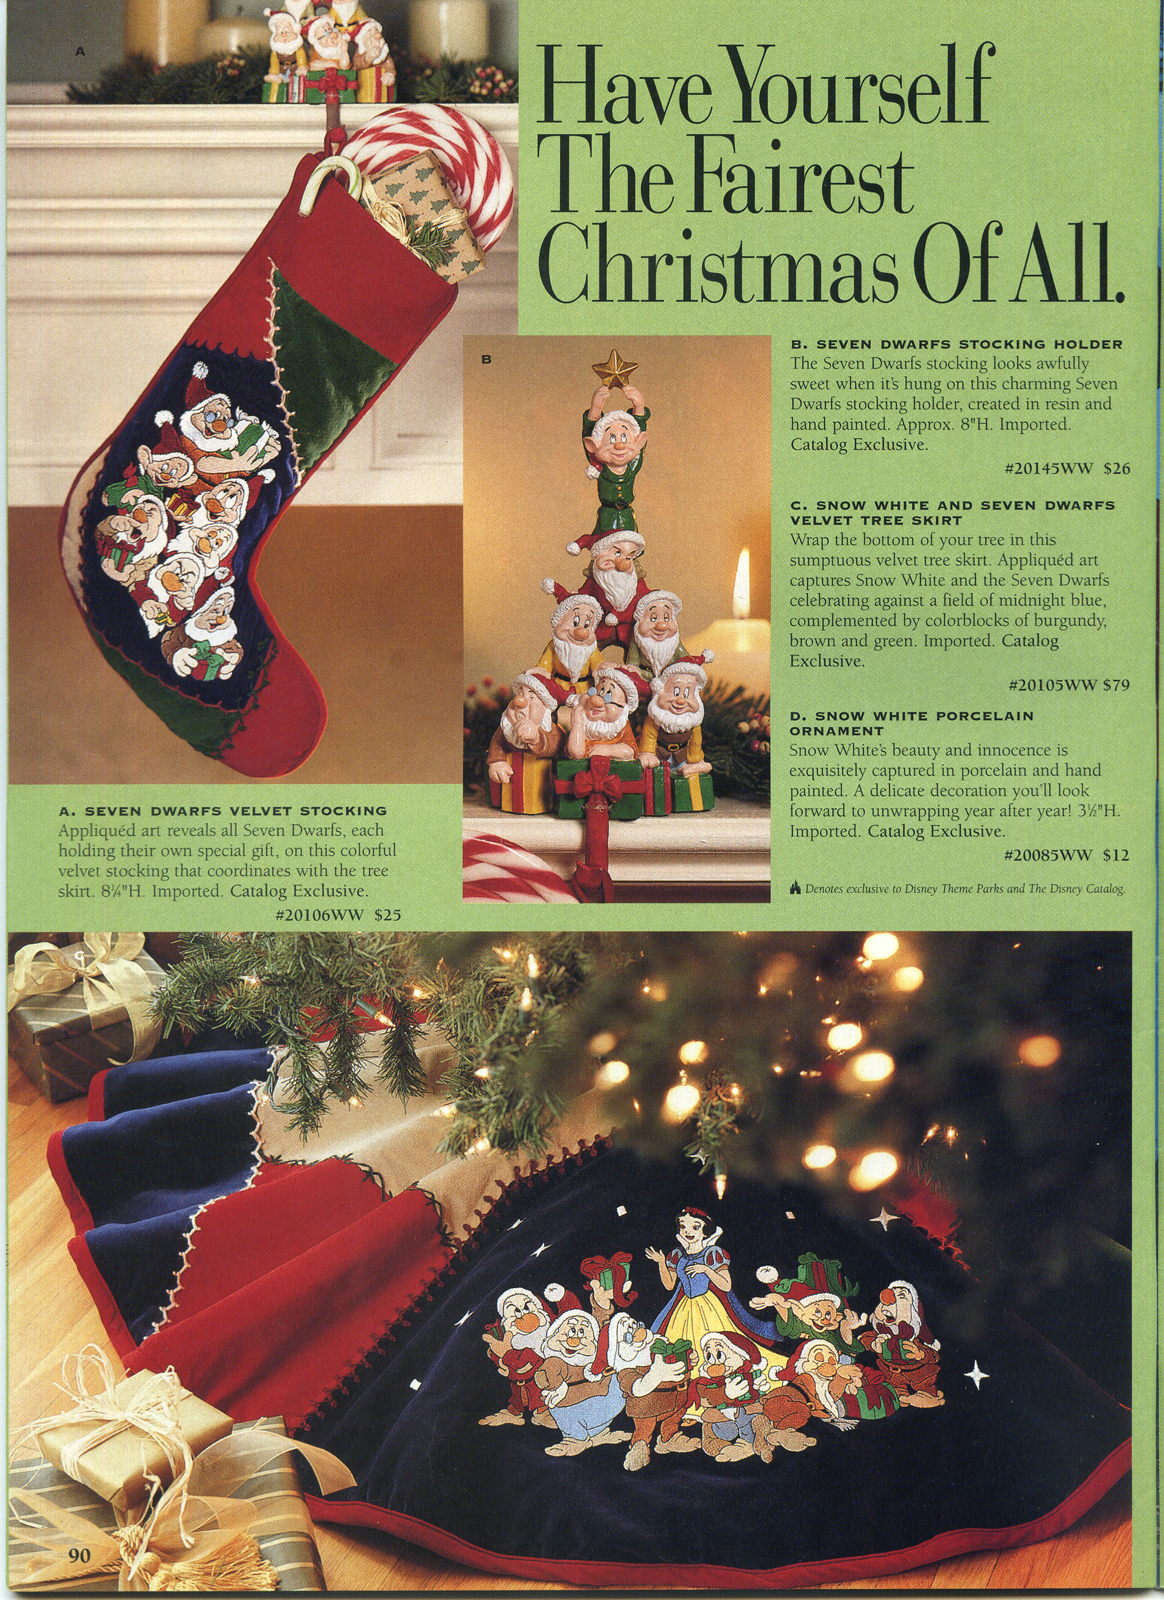 the opposite page had a snow white porcelain ornament seven dwarfs bell ornaments the storybook ornament set and christmas snowglobe - Christmas Decoration Catalogs